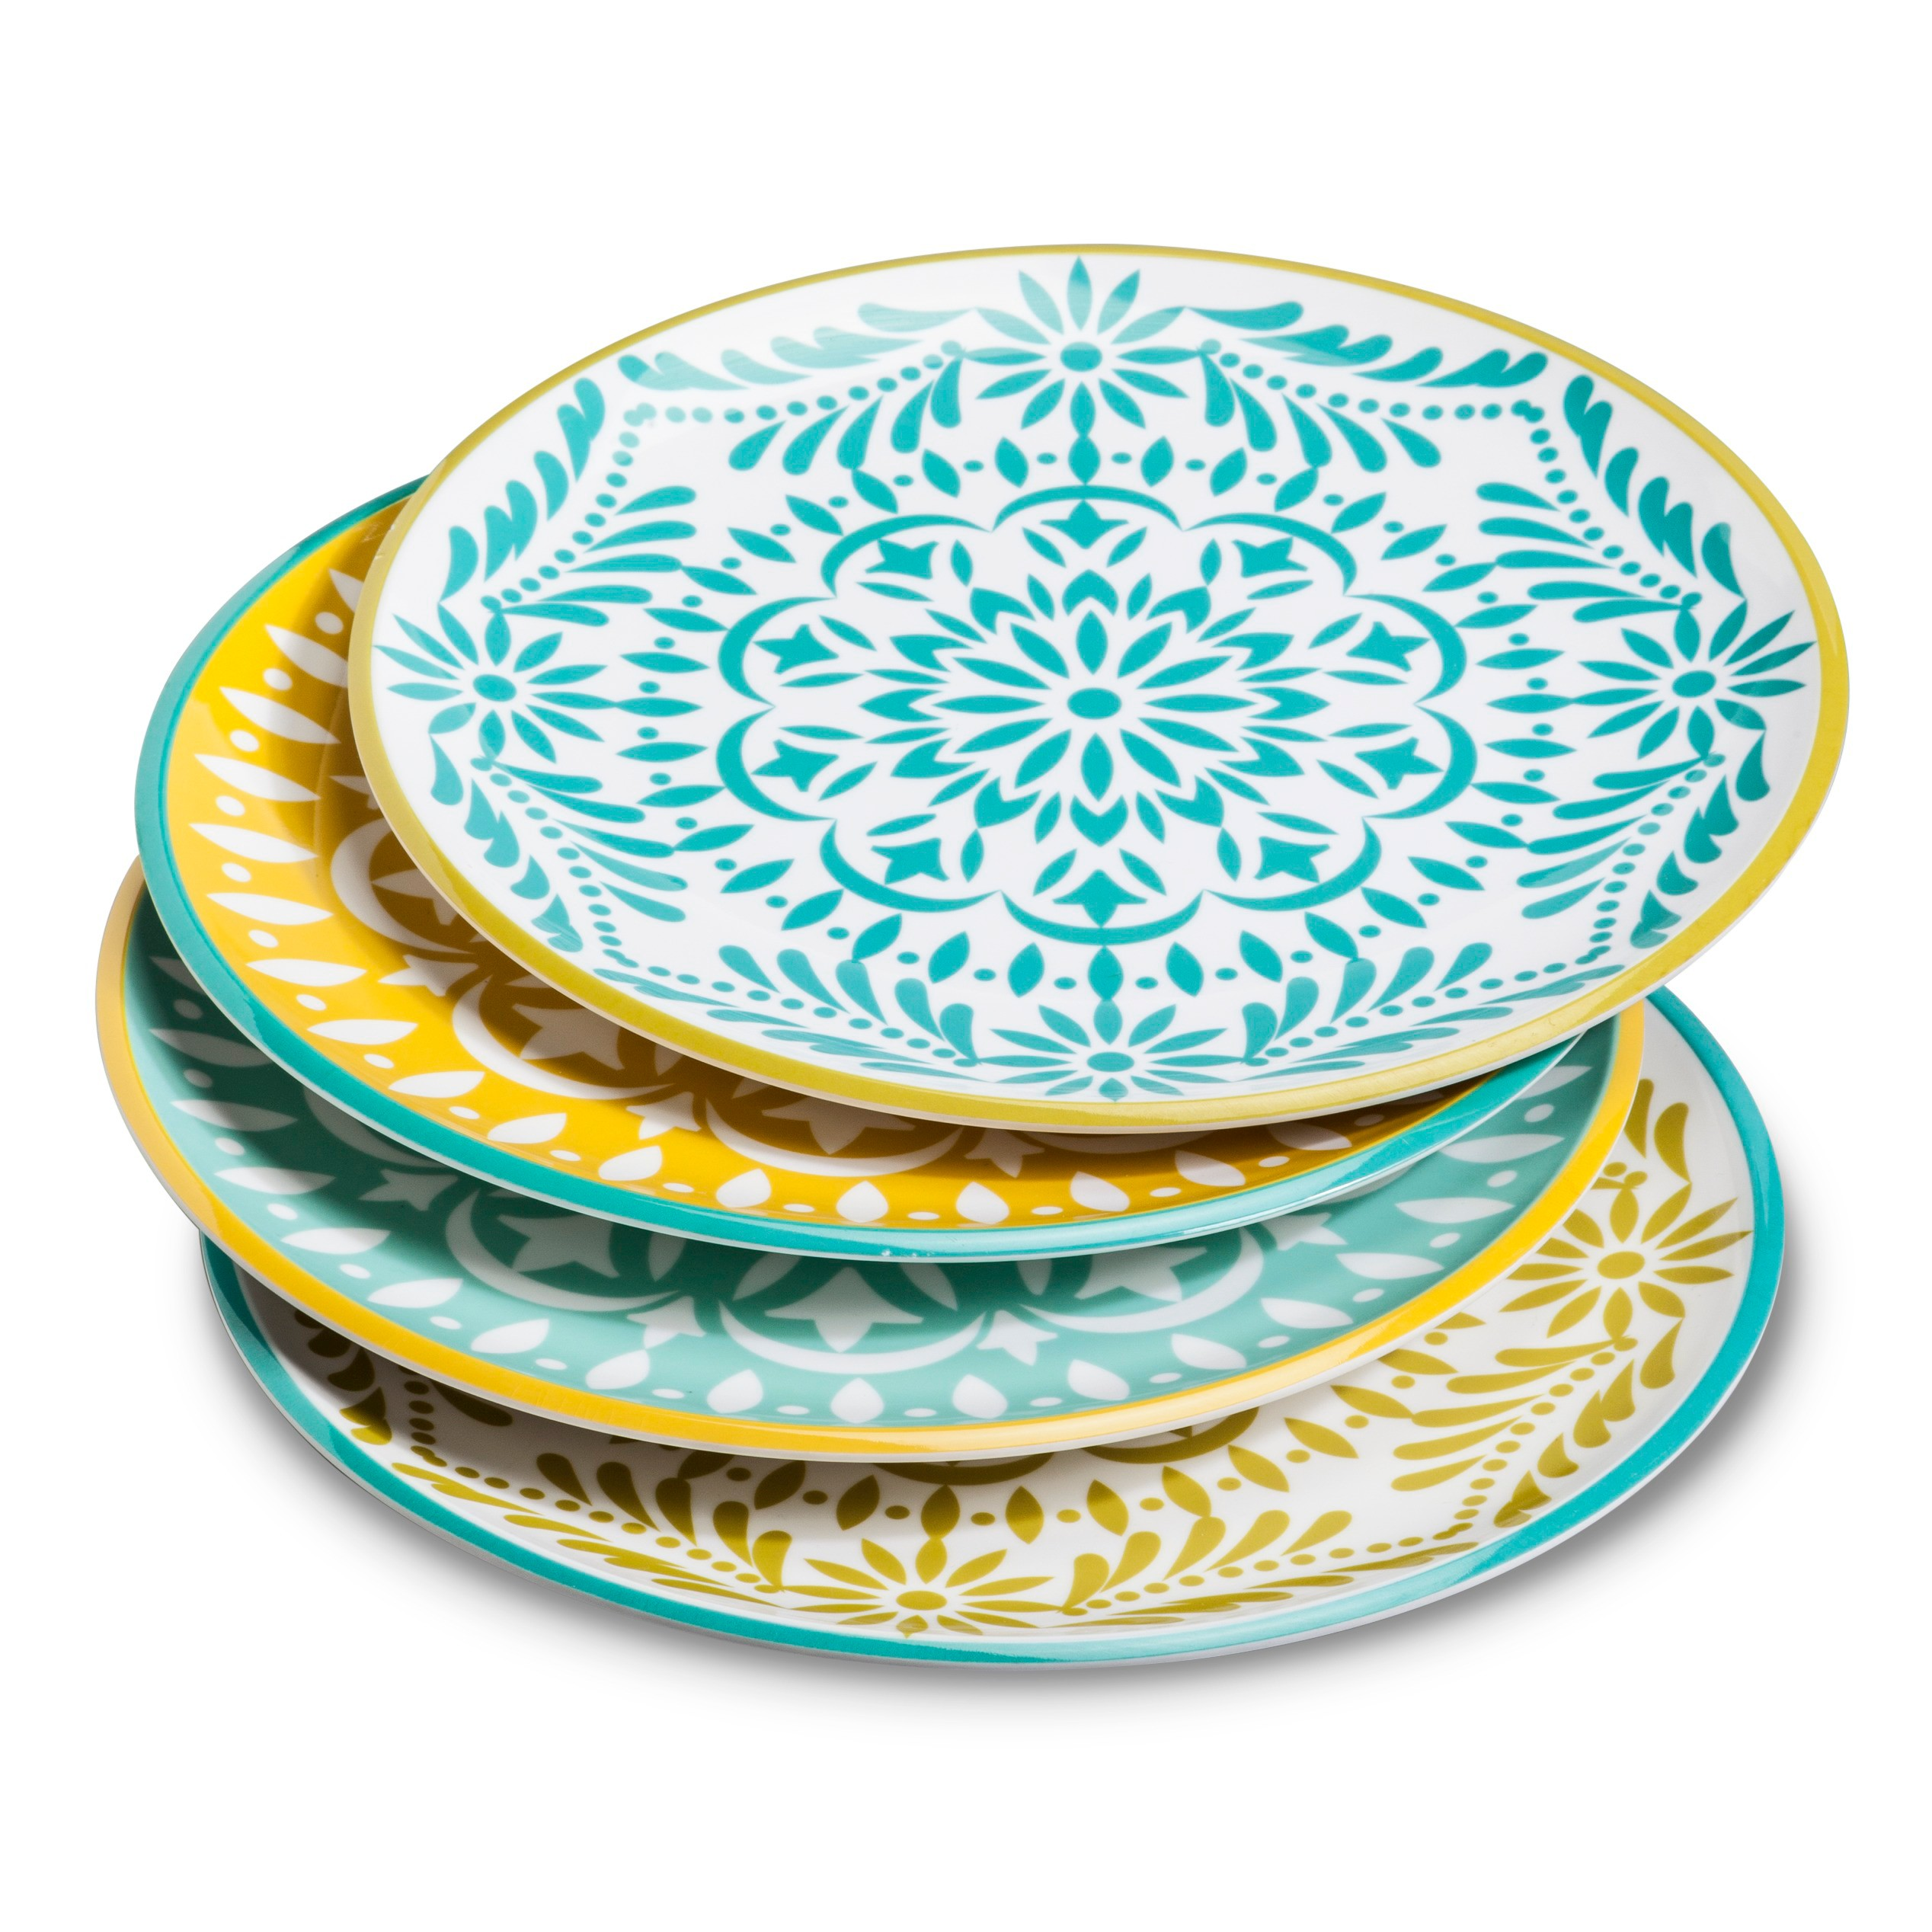 $26.00/set of 4 These Target plates are a perfect budget friendly option for summer dining!  sc 1 st  Cococozy & 11 Melamine Plates | COCOCOZY